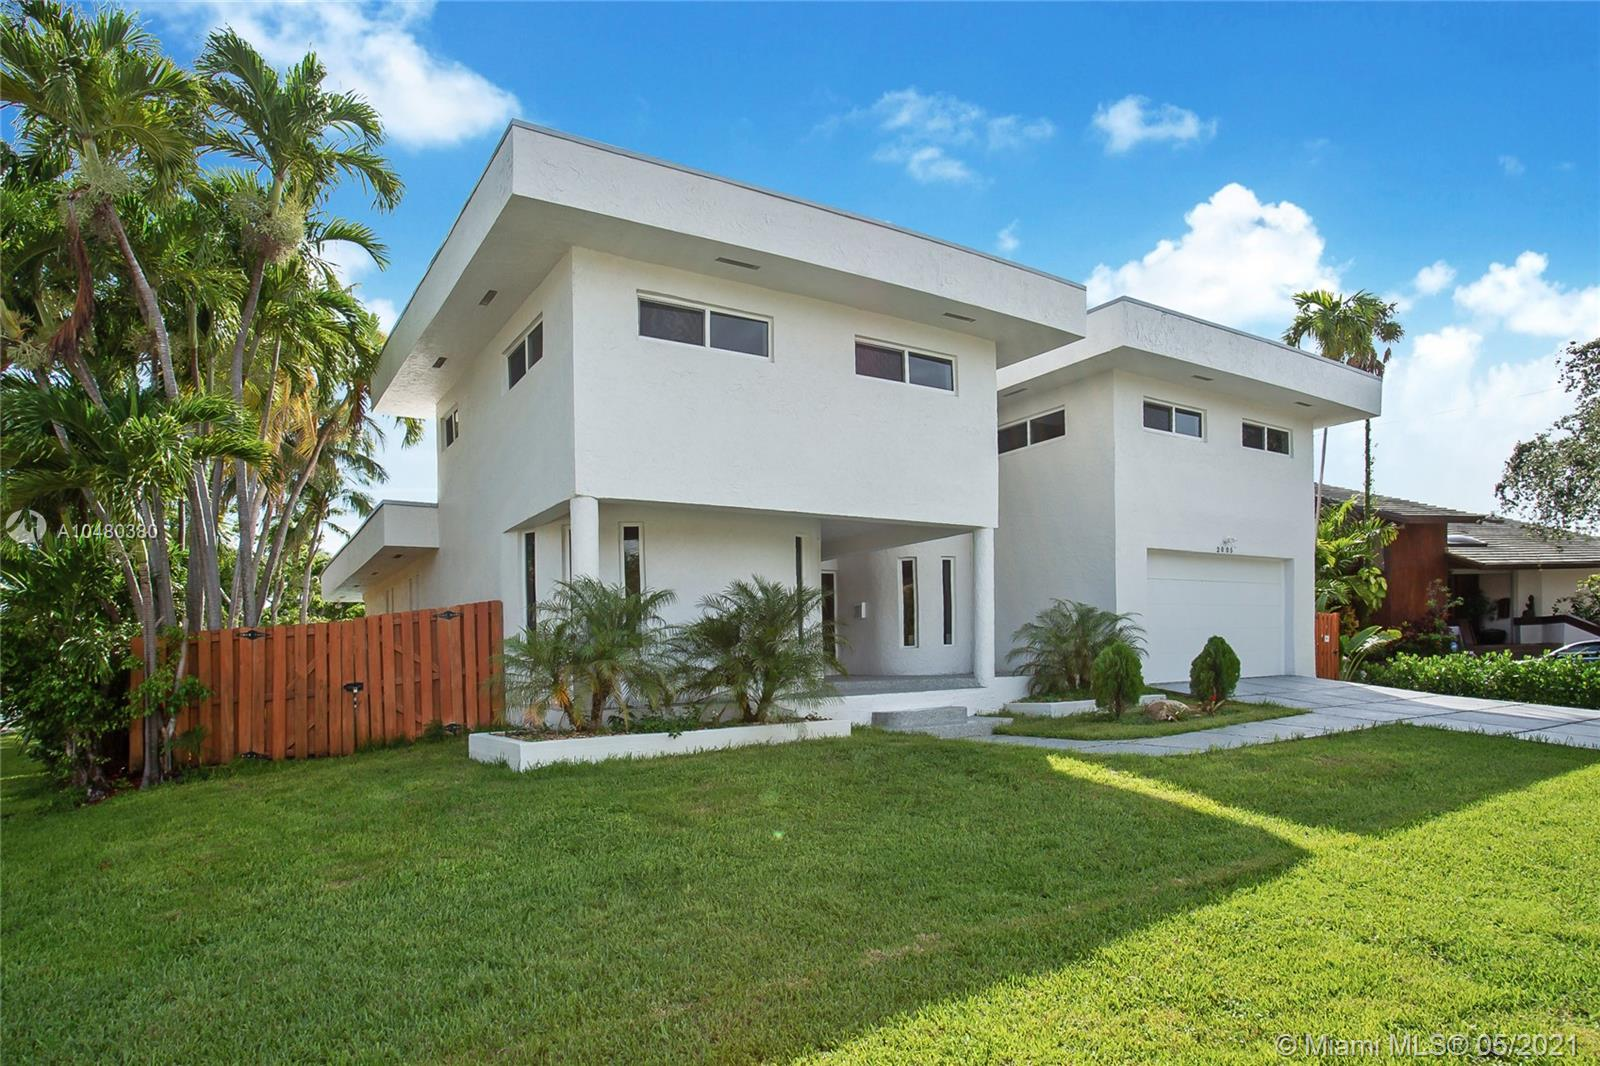 North Miami Beach - 2005 NE 120th Rd, North Miami, FL 33181